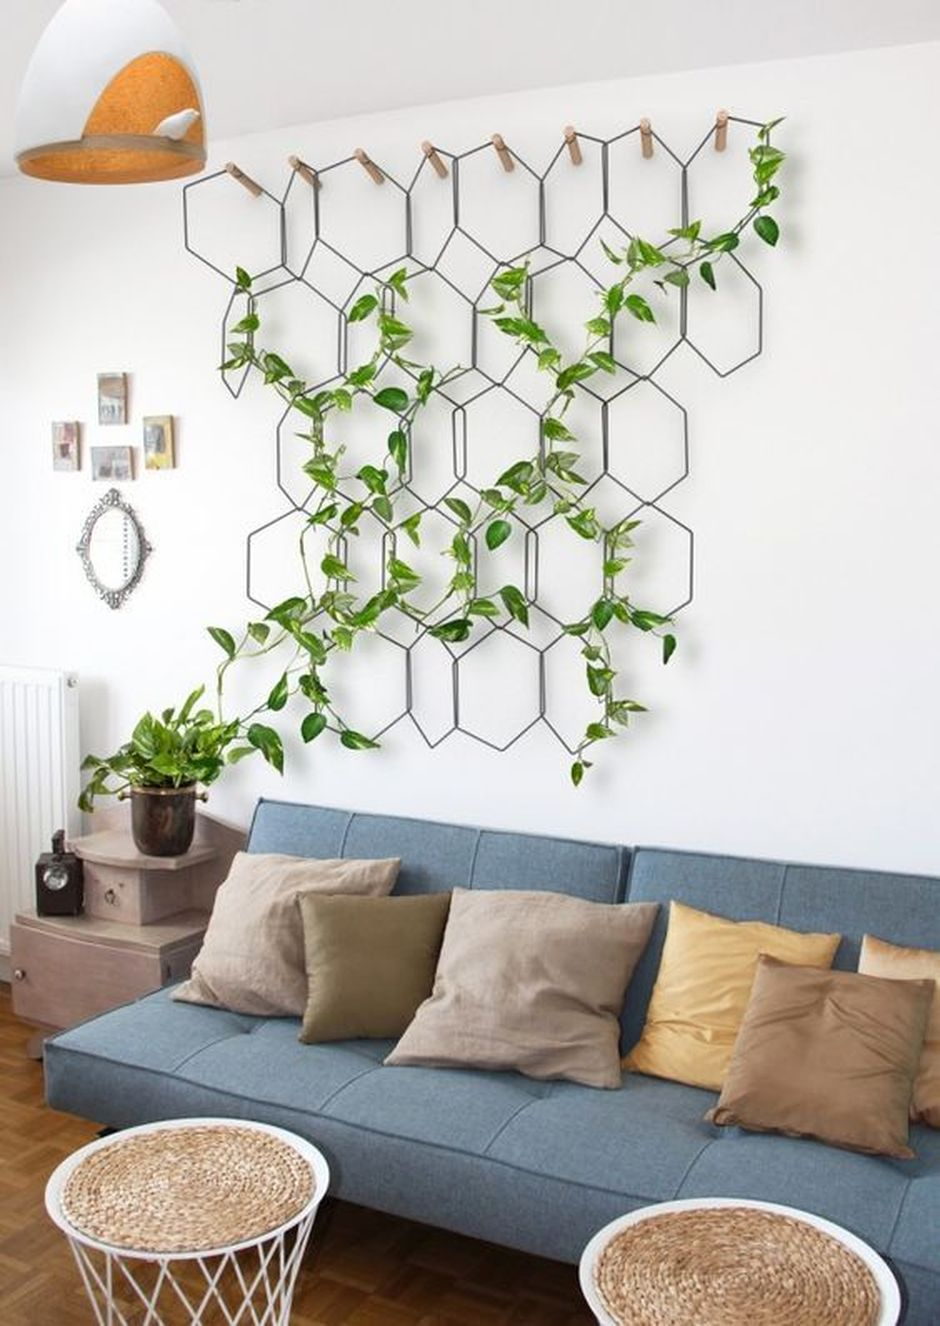 Marvelous Indoor Vines and Climbing Plants Decorations 4